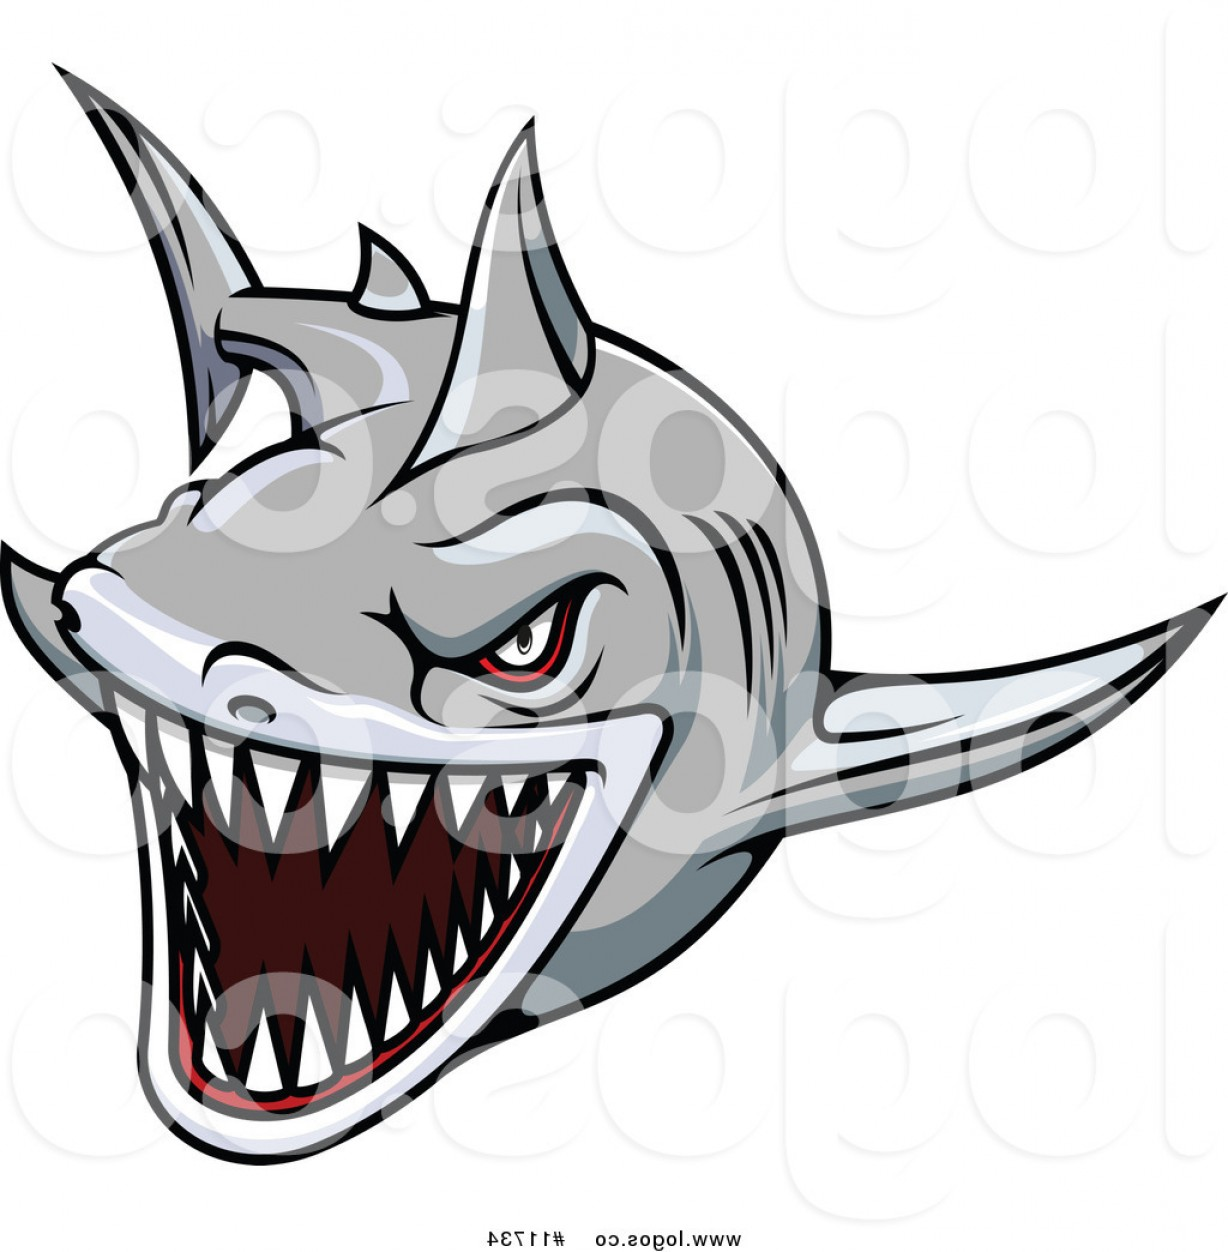 1228x1252 Royalty Free Vector Of A Vicious Swimming Shark Logo By Vector